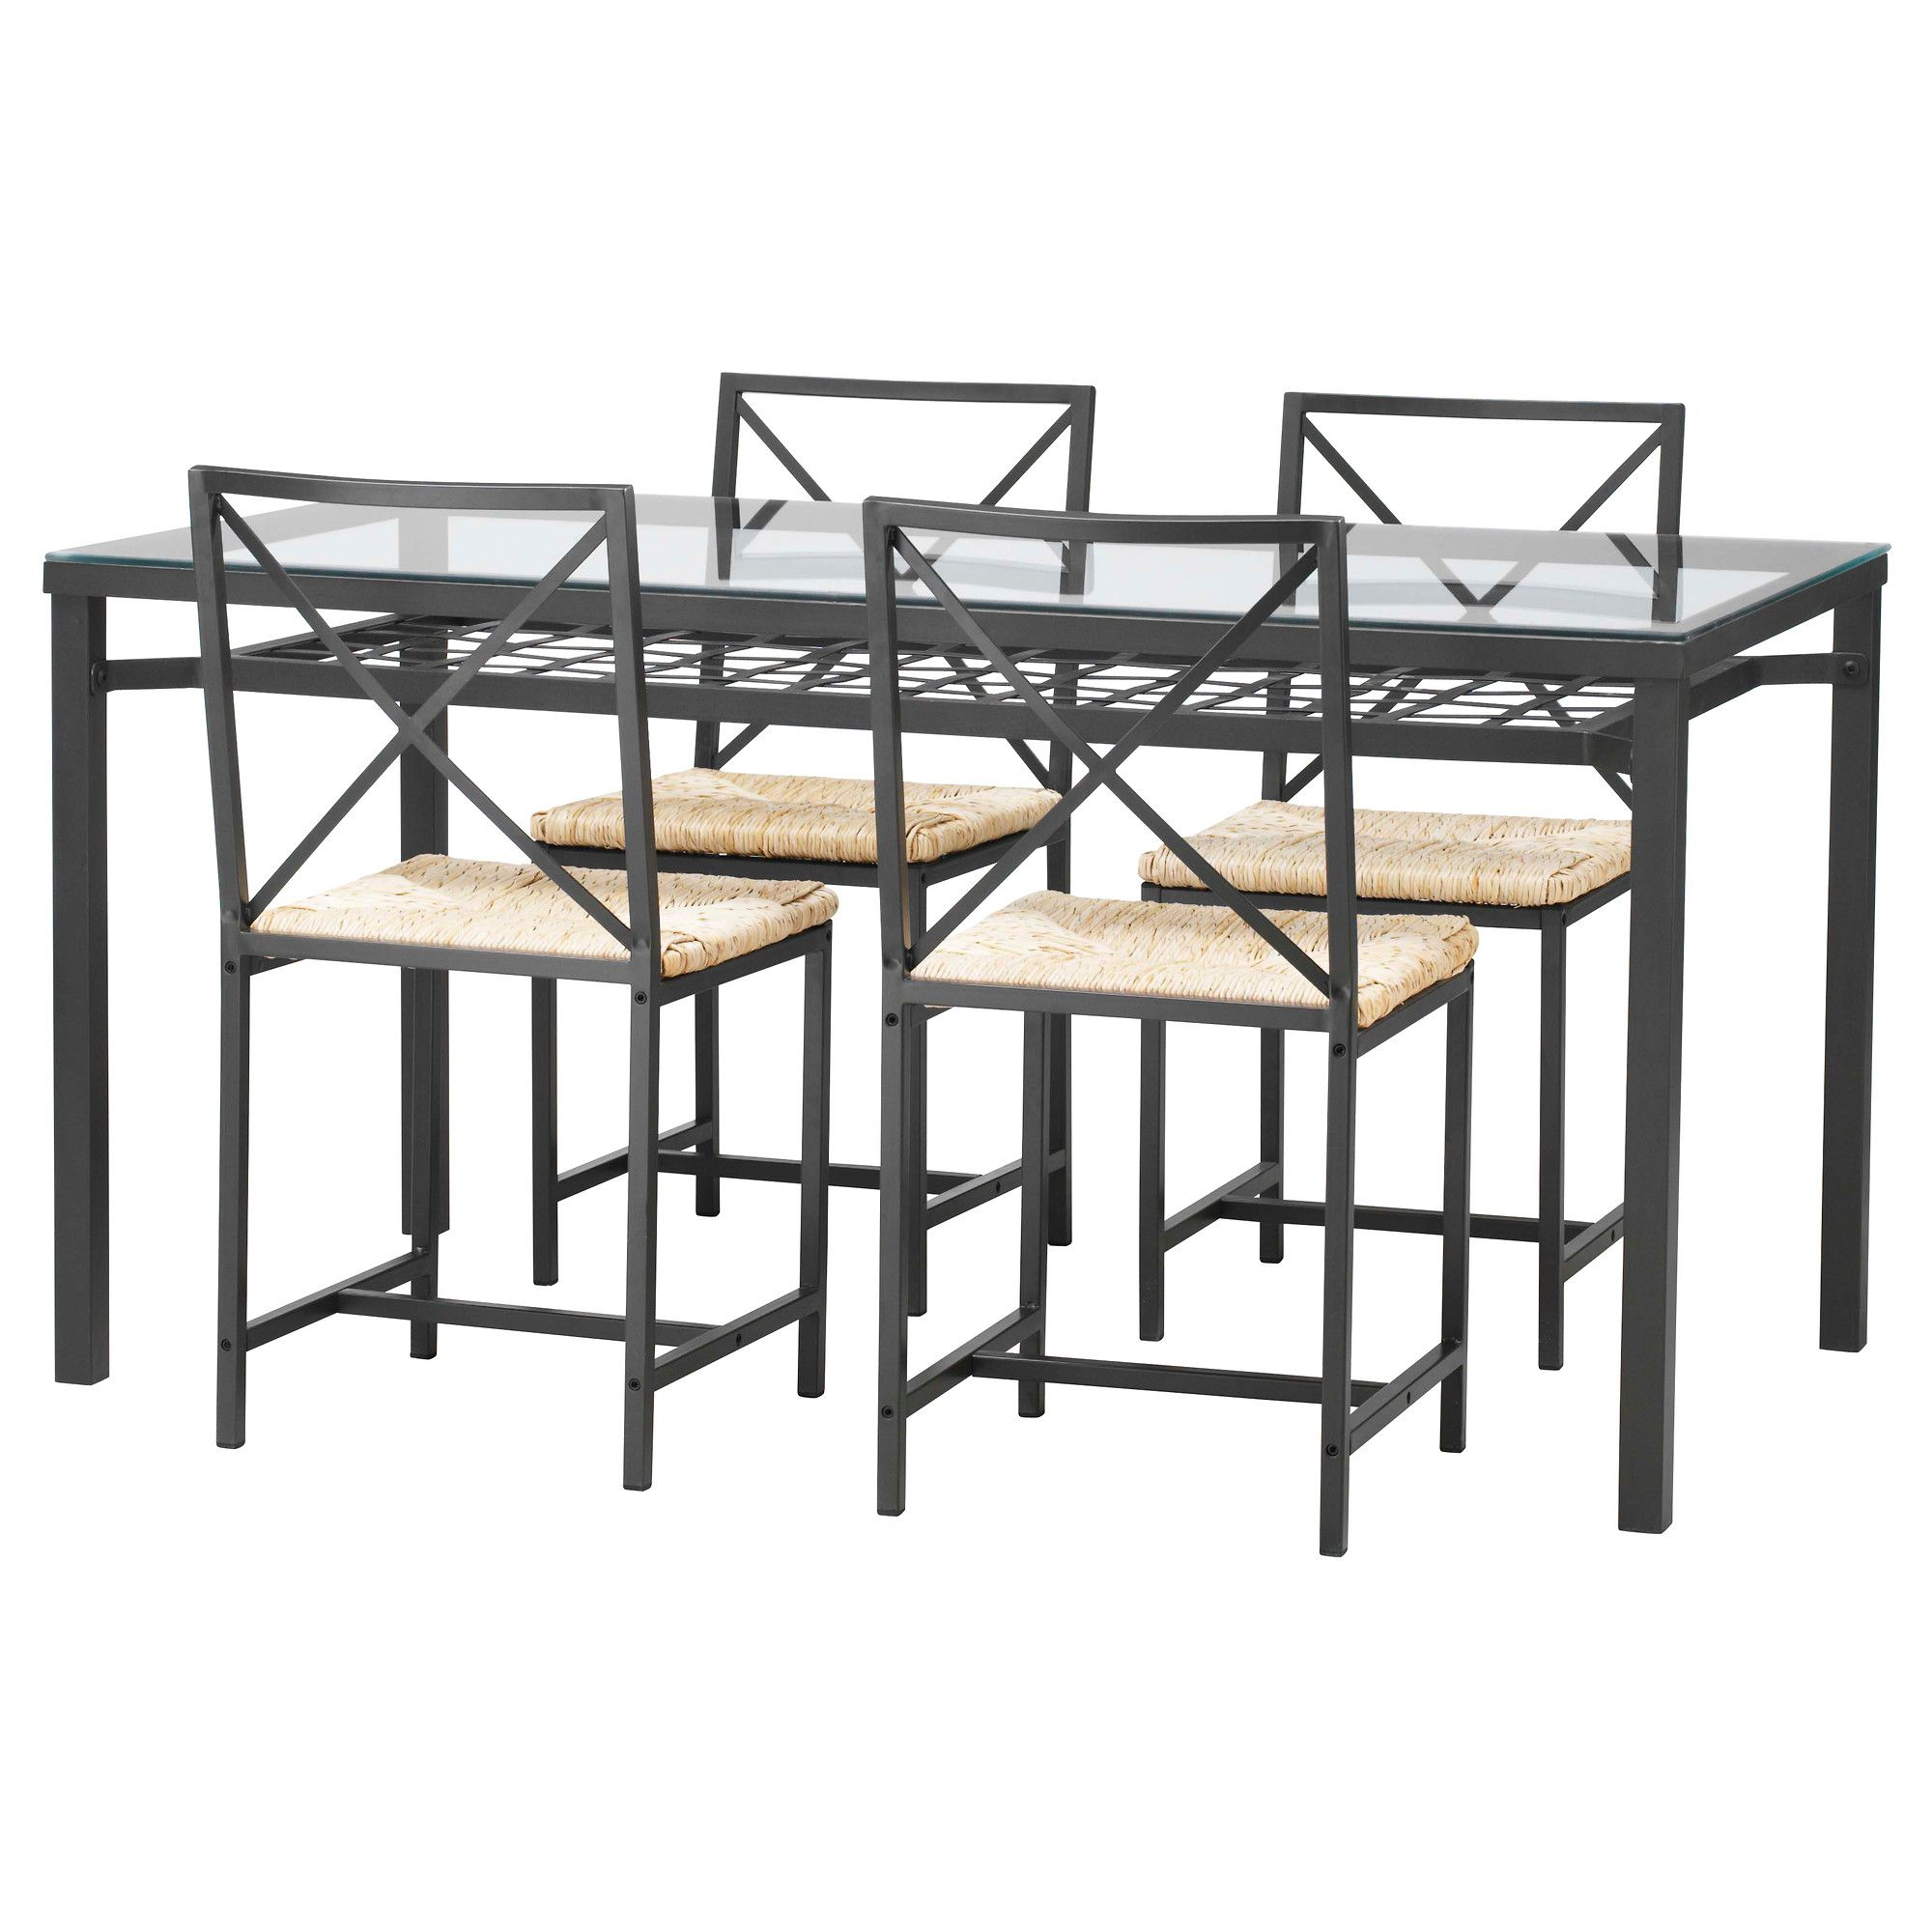 Ikea Table Chairs Glass Table And 4 Chairs @ Ikea For $180. There's A Shelf